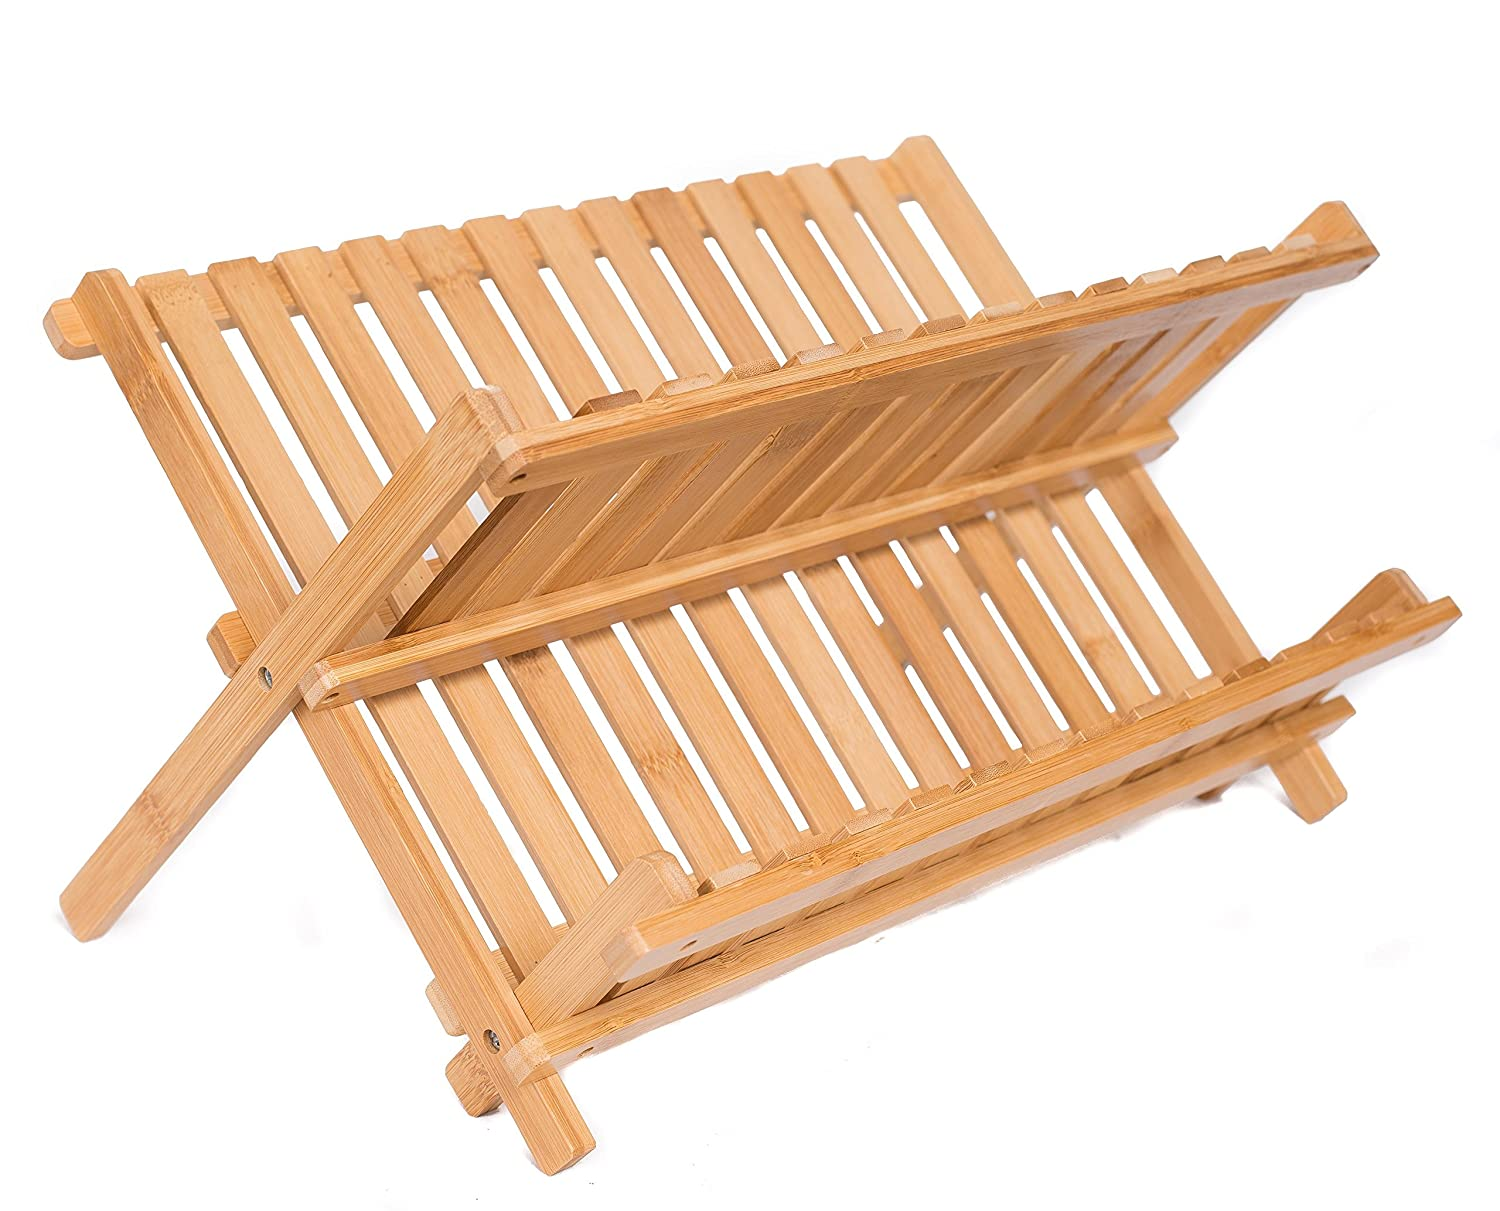 Birdrock Home Bamboo Folding Dish Rack 2 Tier Collapsible